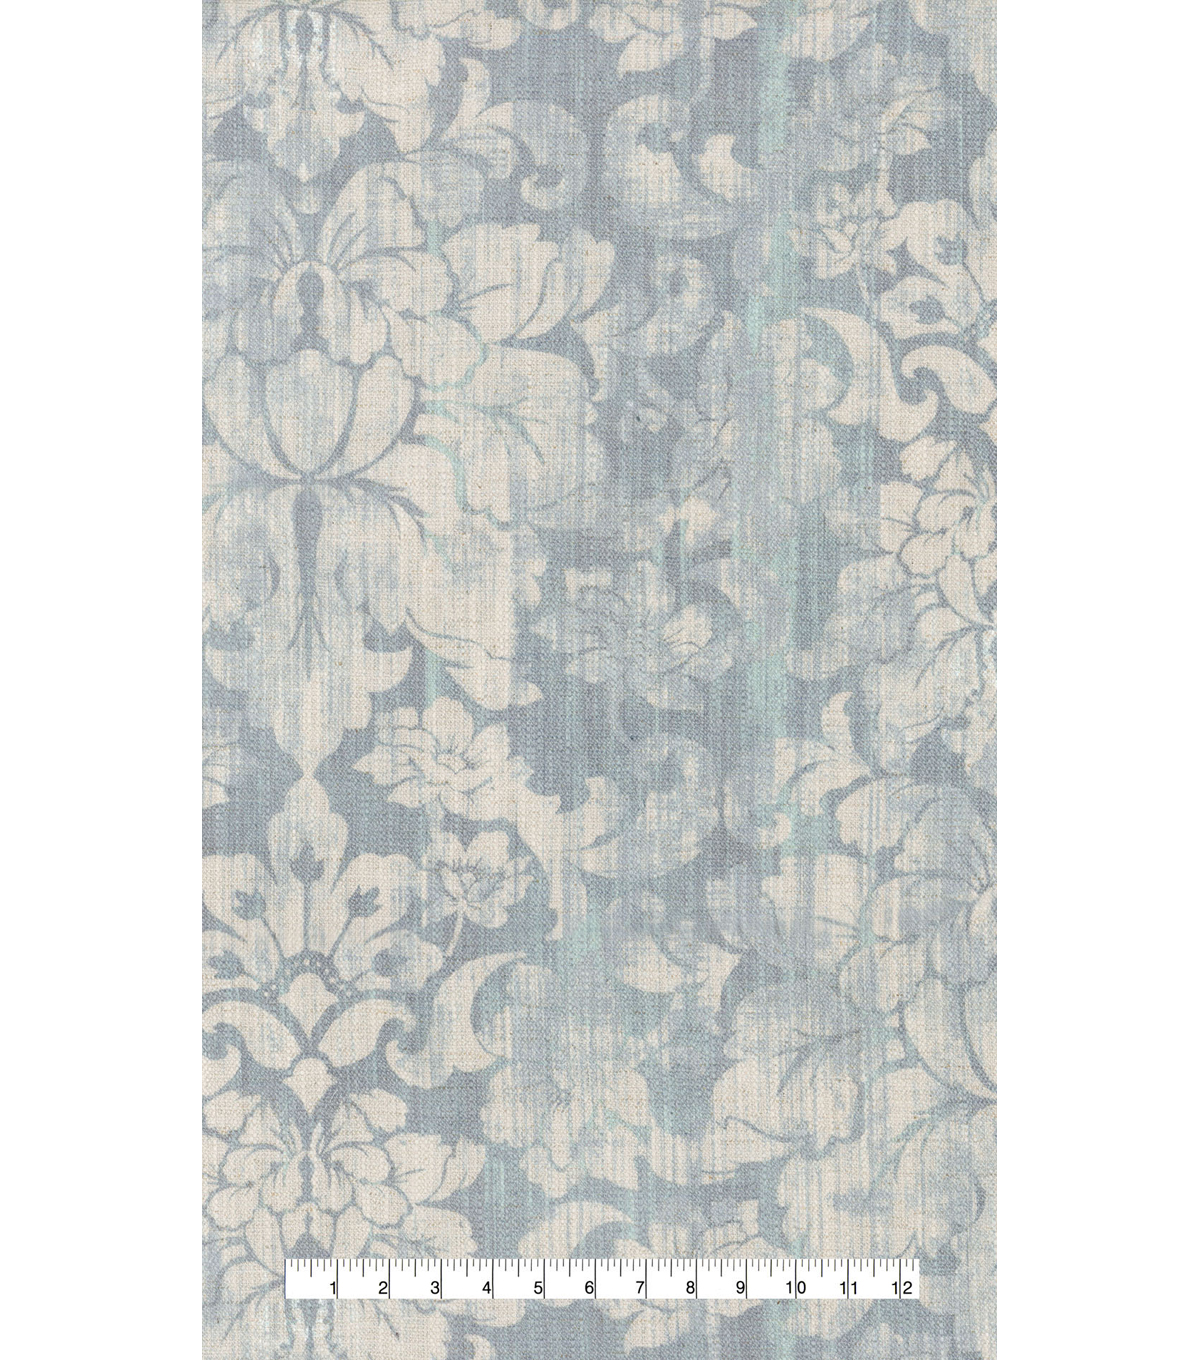 Waverly Upholstery Fabric 13x13\u0022 Swatch-Air Kiss Mist